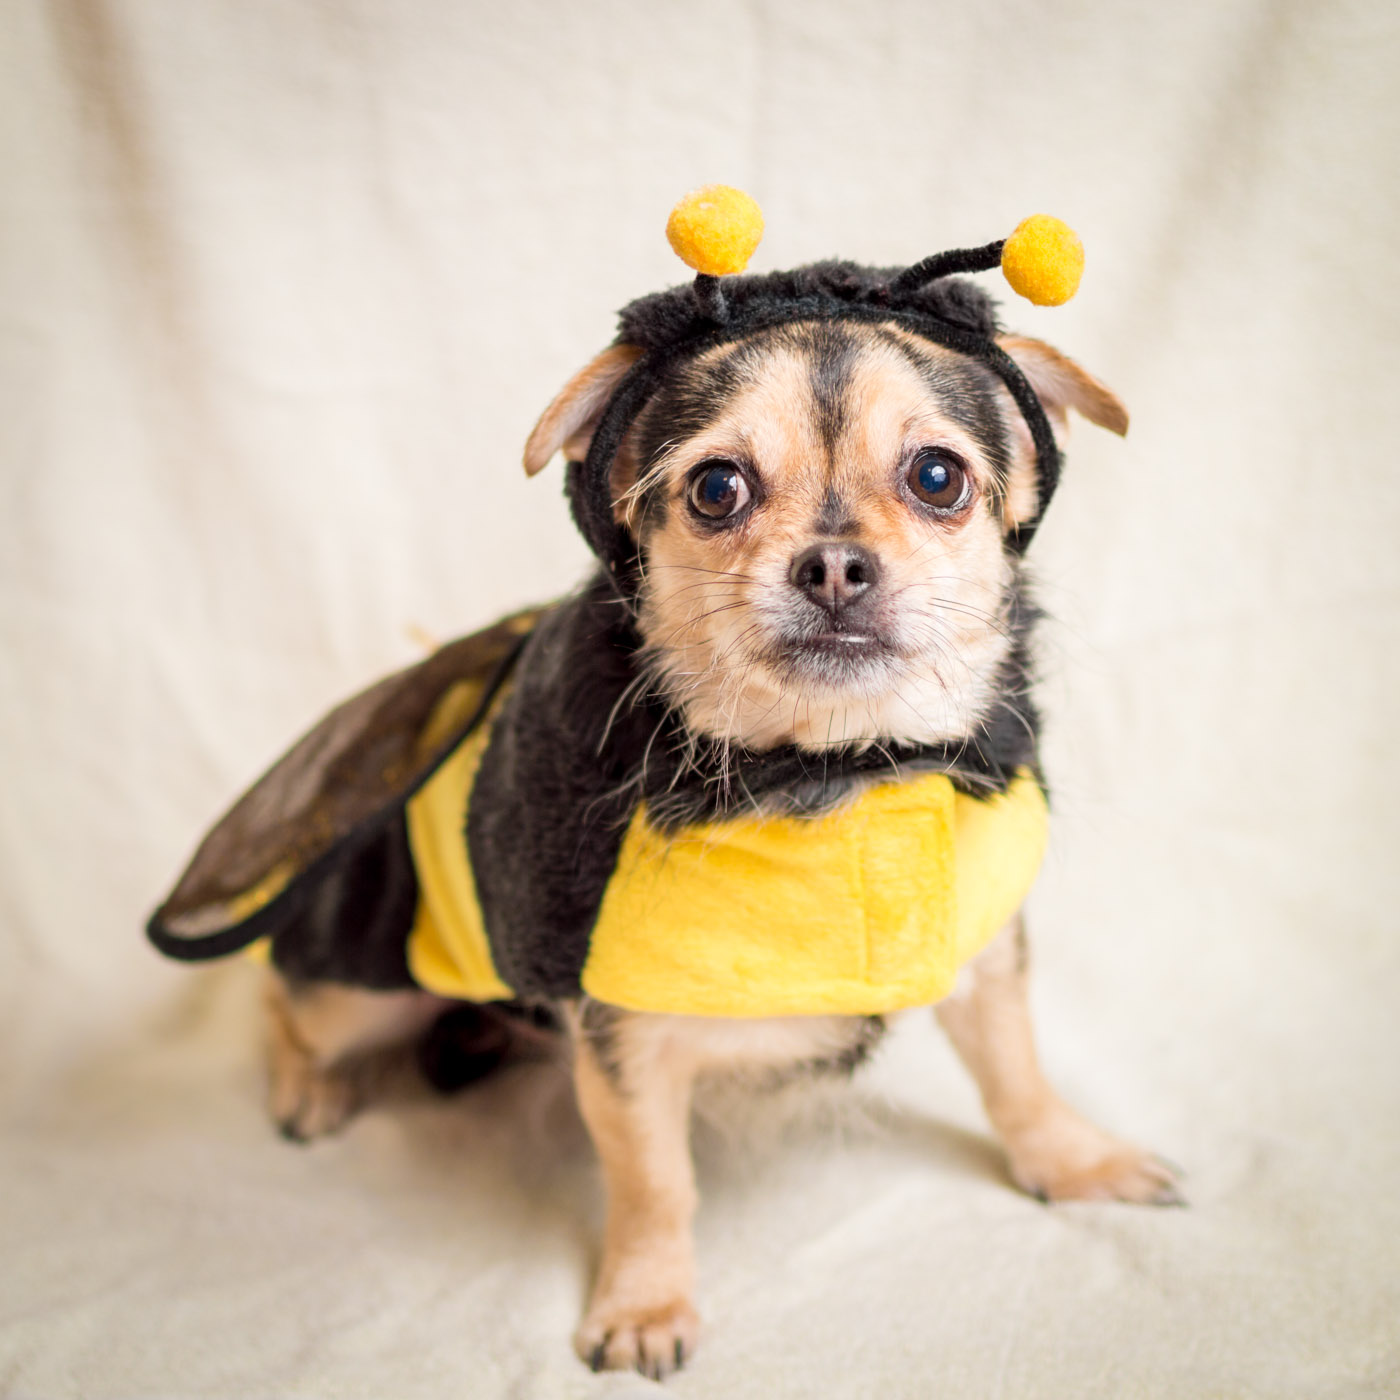 The plight of the bumble bee